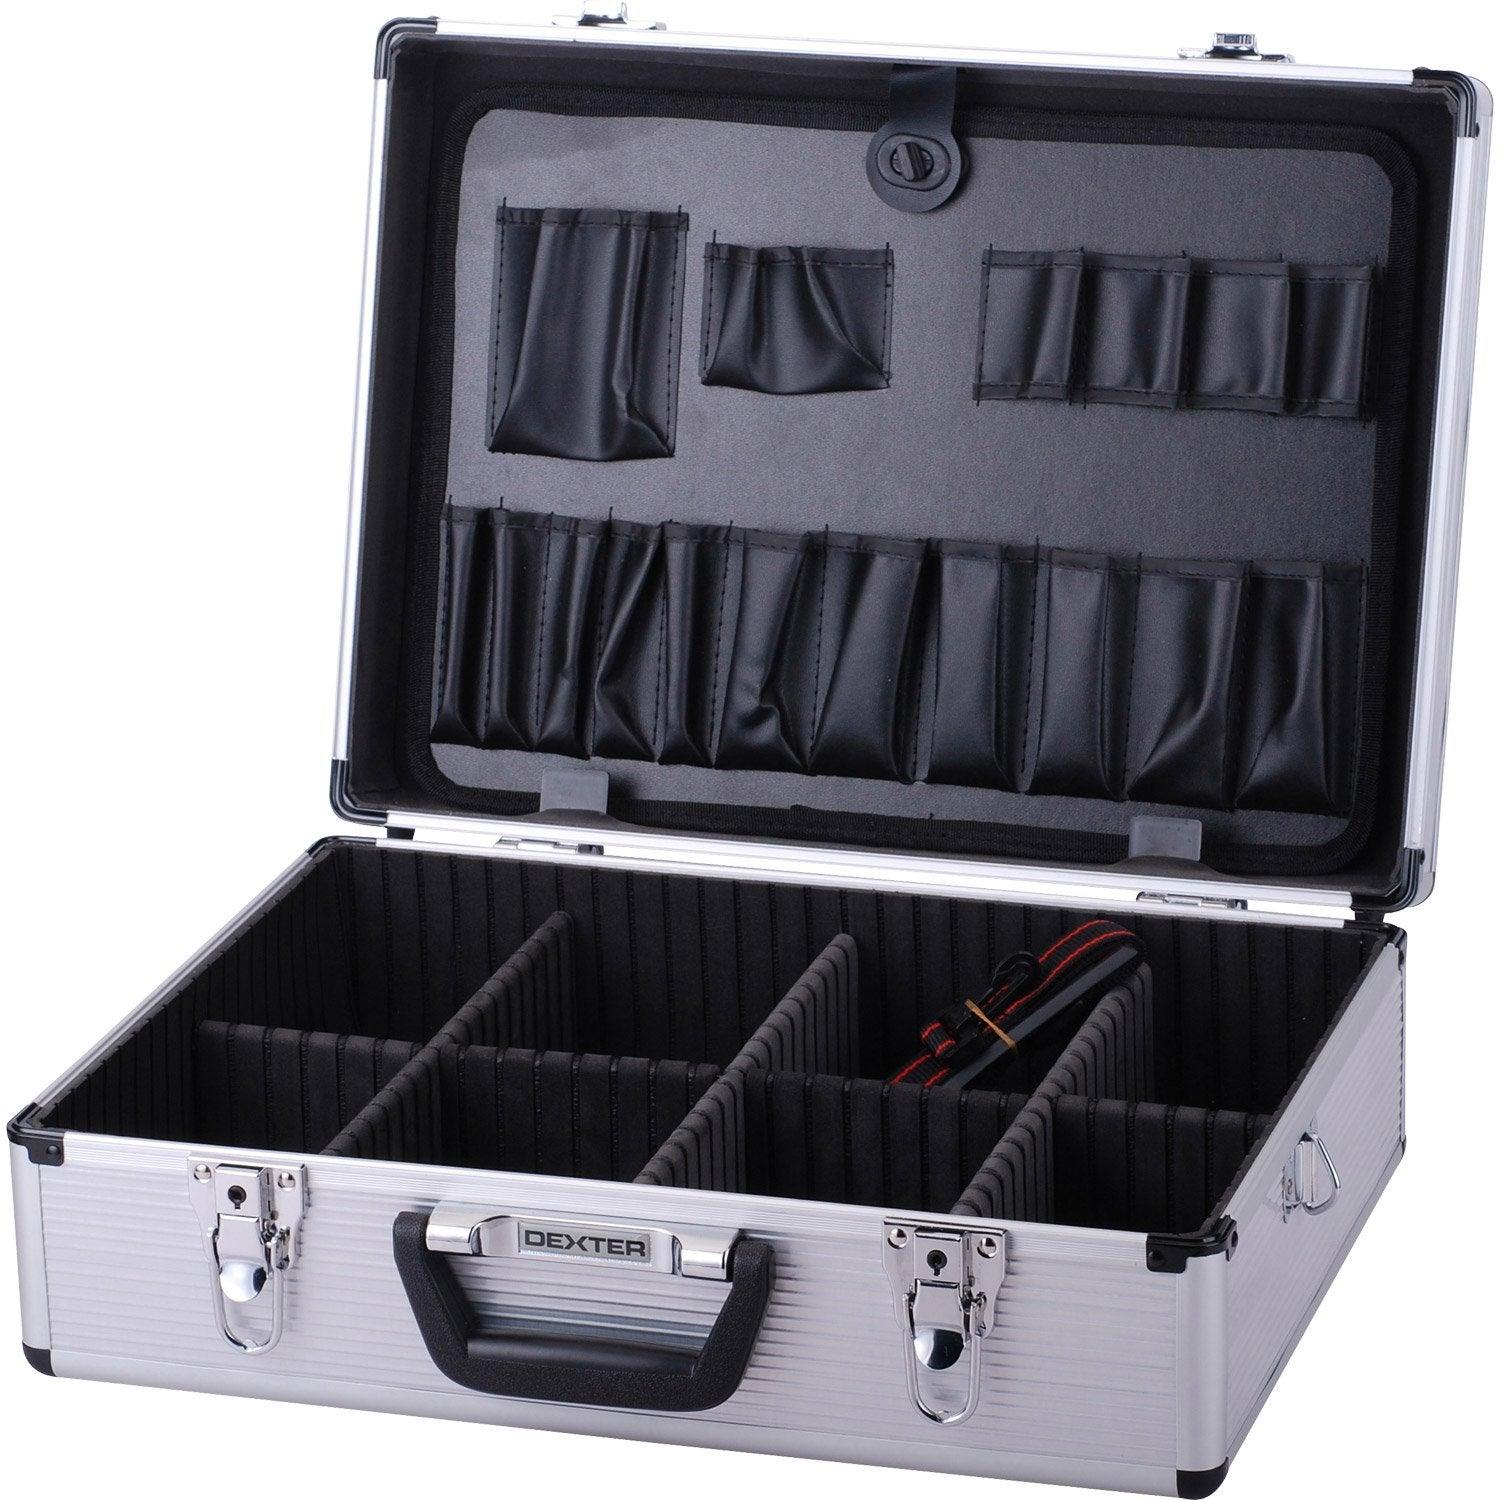 Valise outils dexter cm leroy merlin - Outillage leroy merlin ...